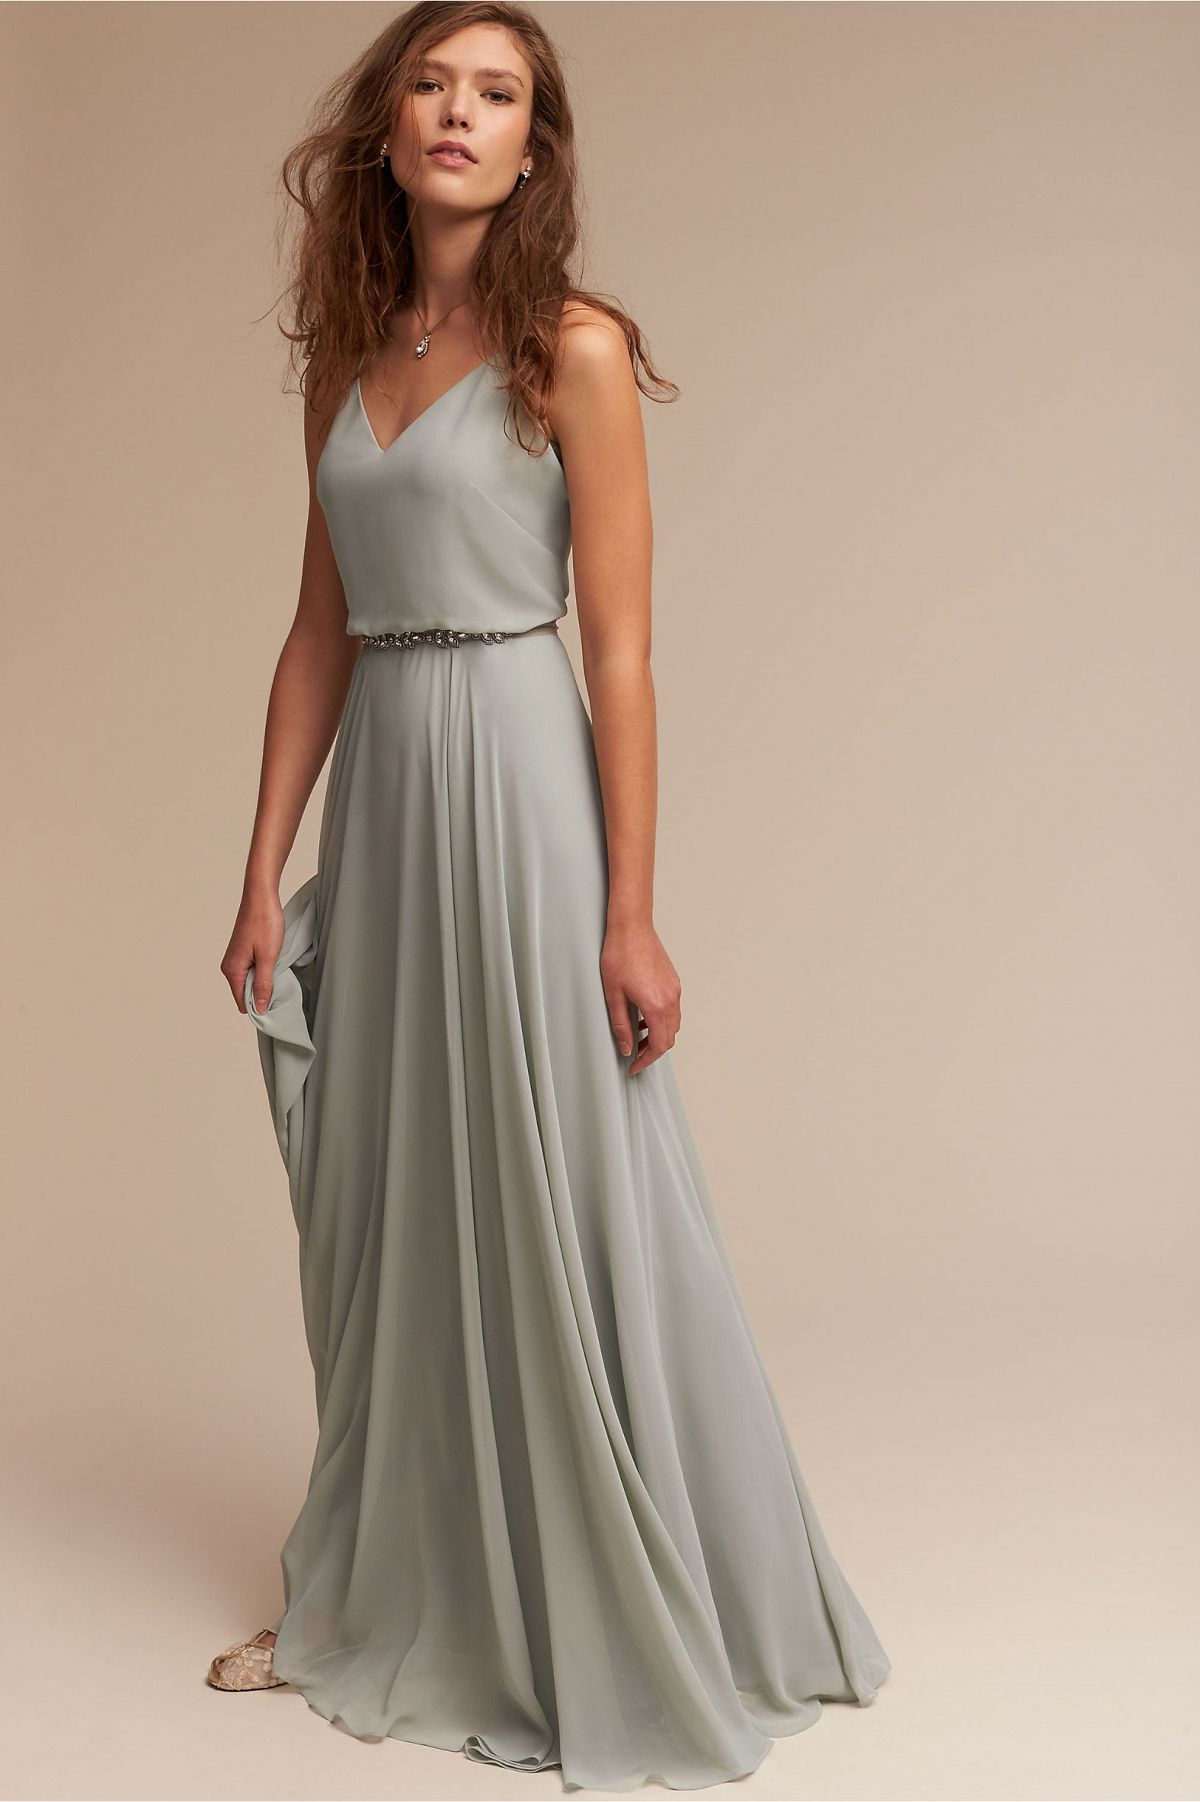 a66a6e4c1b0 10 Bridesmaid Dresses you can Wear Again